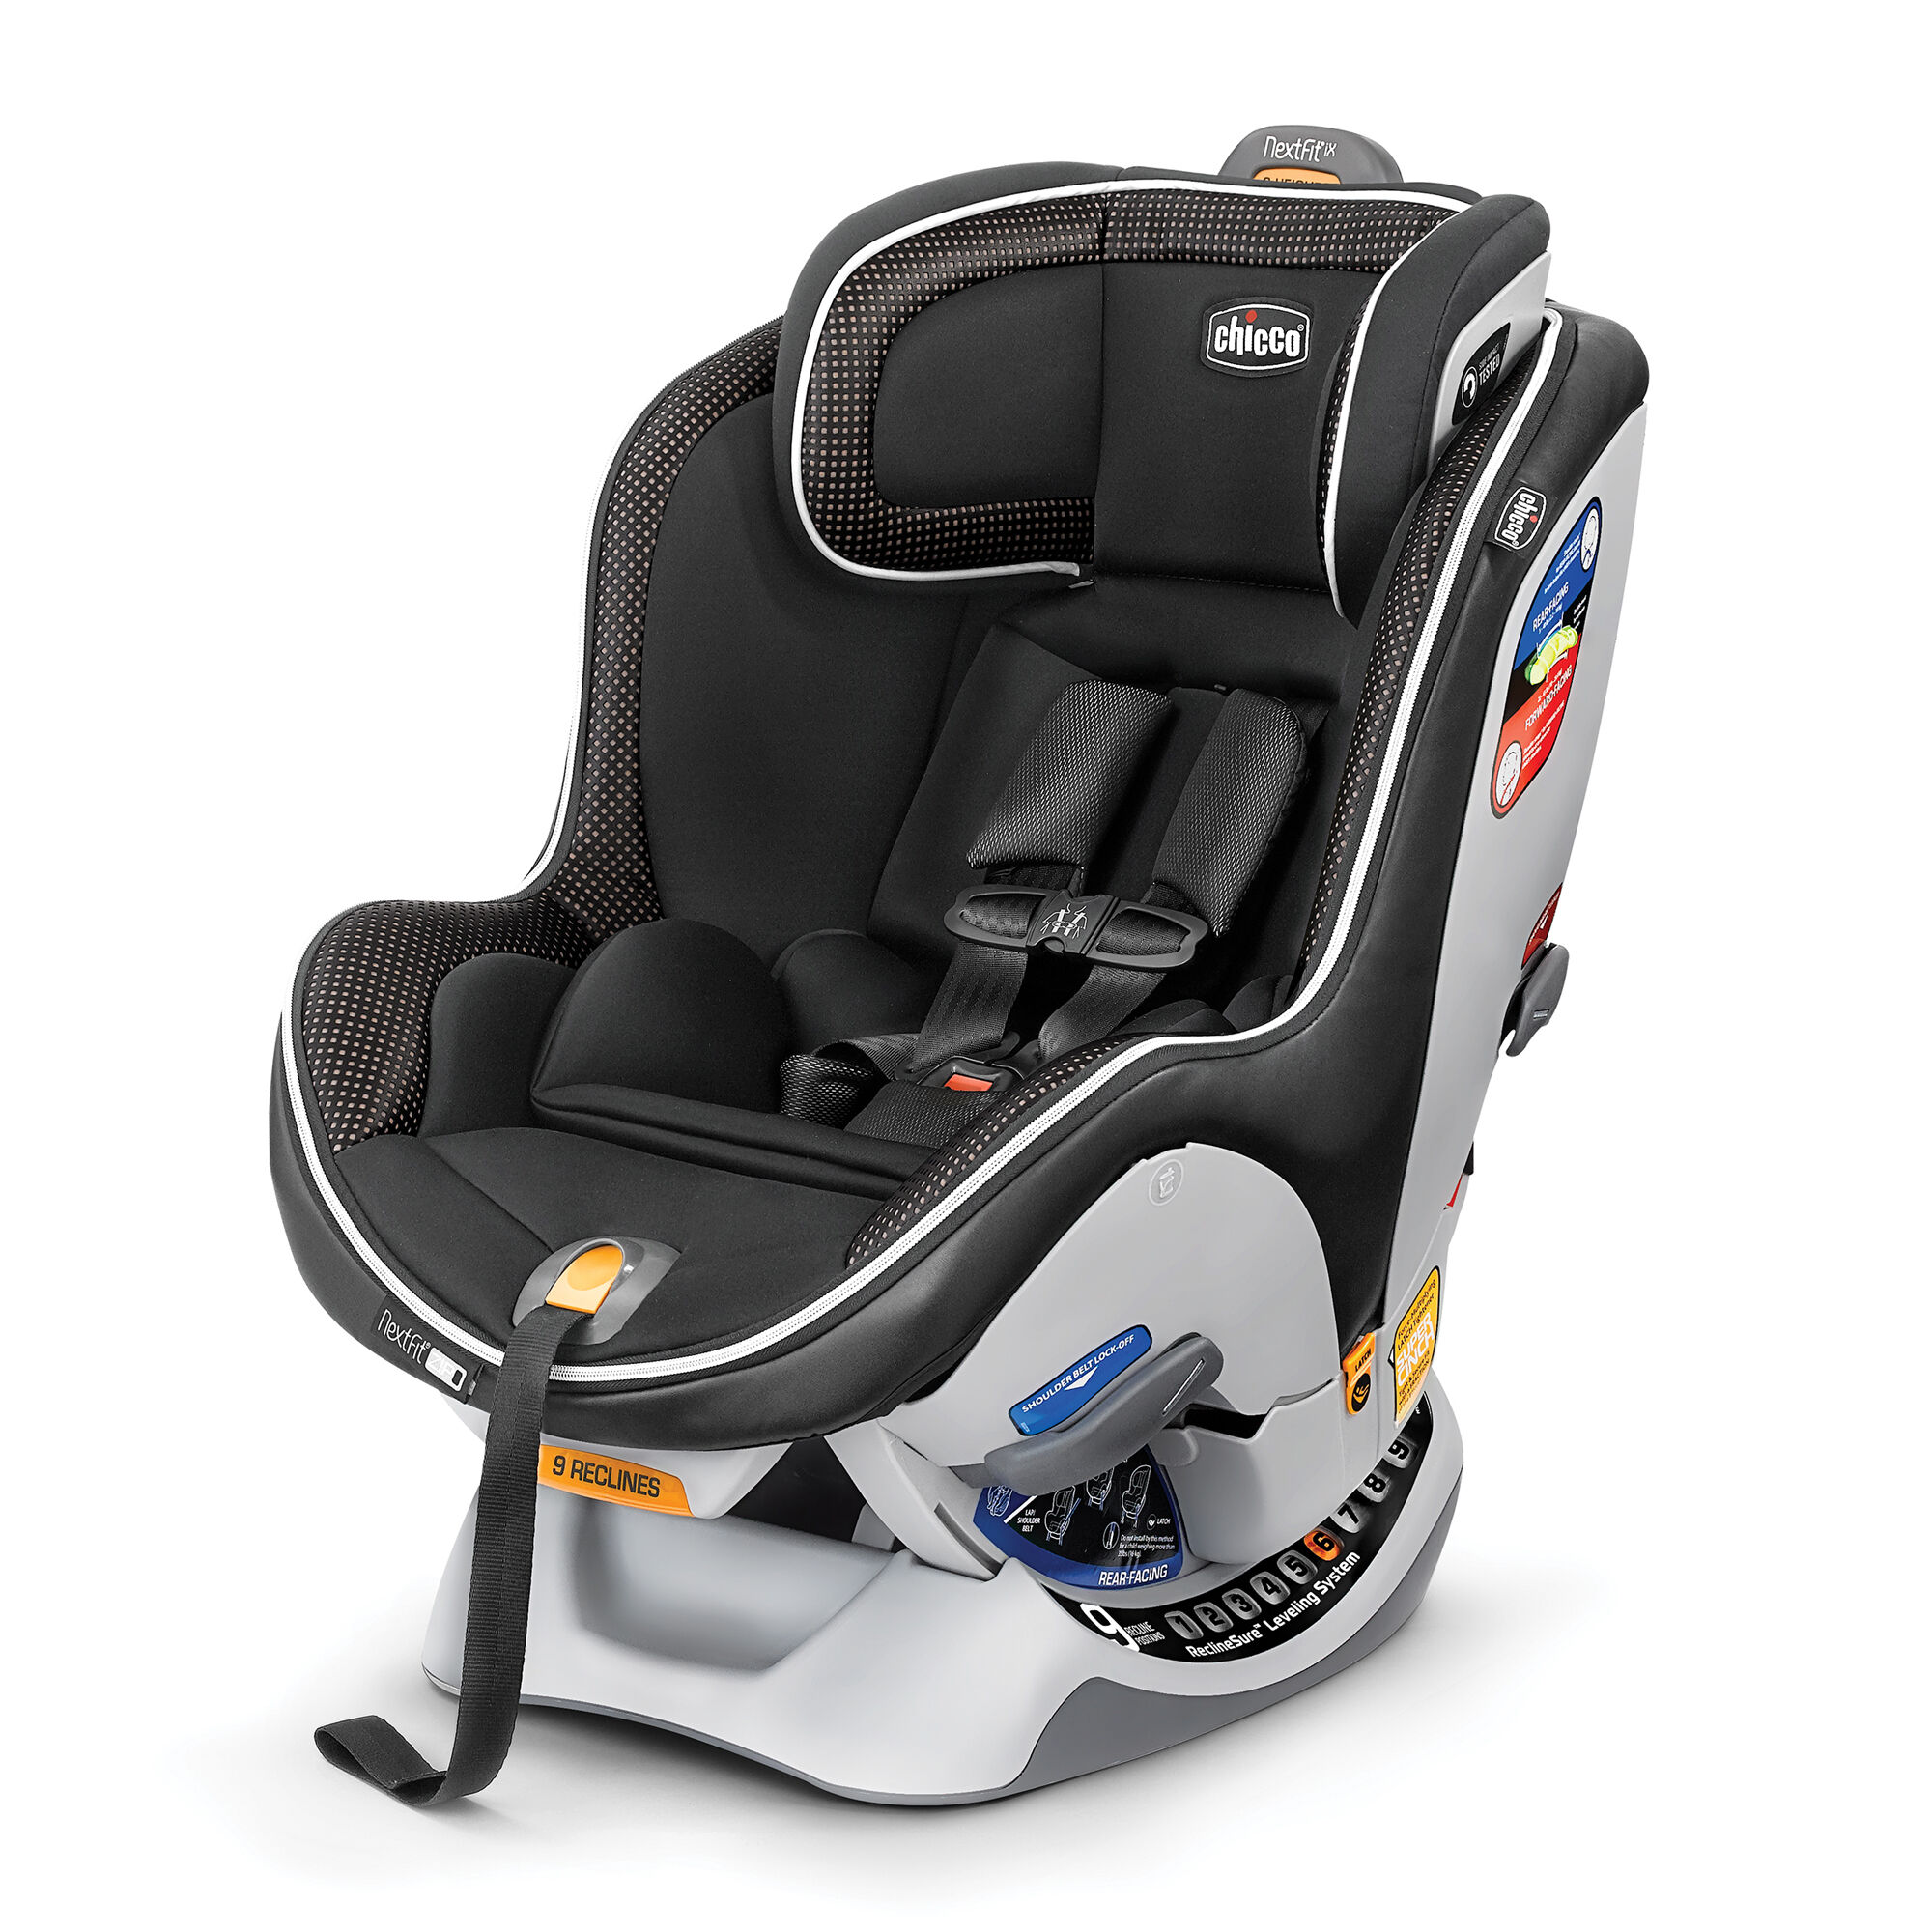 Vehicle Seats Product : Nextfit ix zip luxe convertible car seat dolce chicco